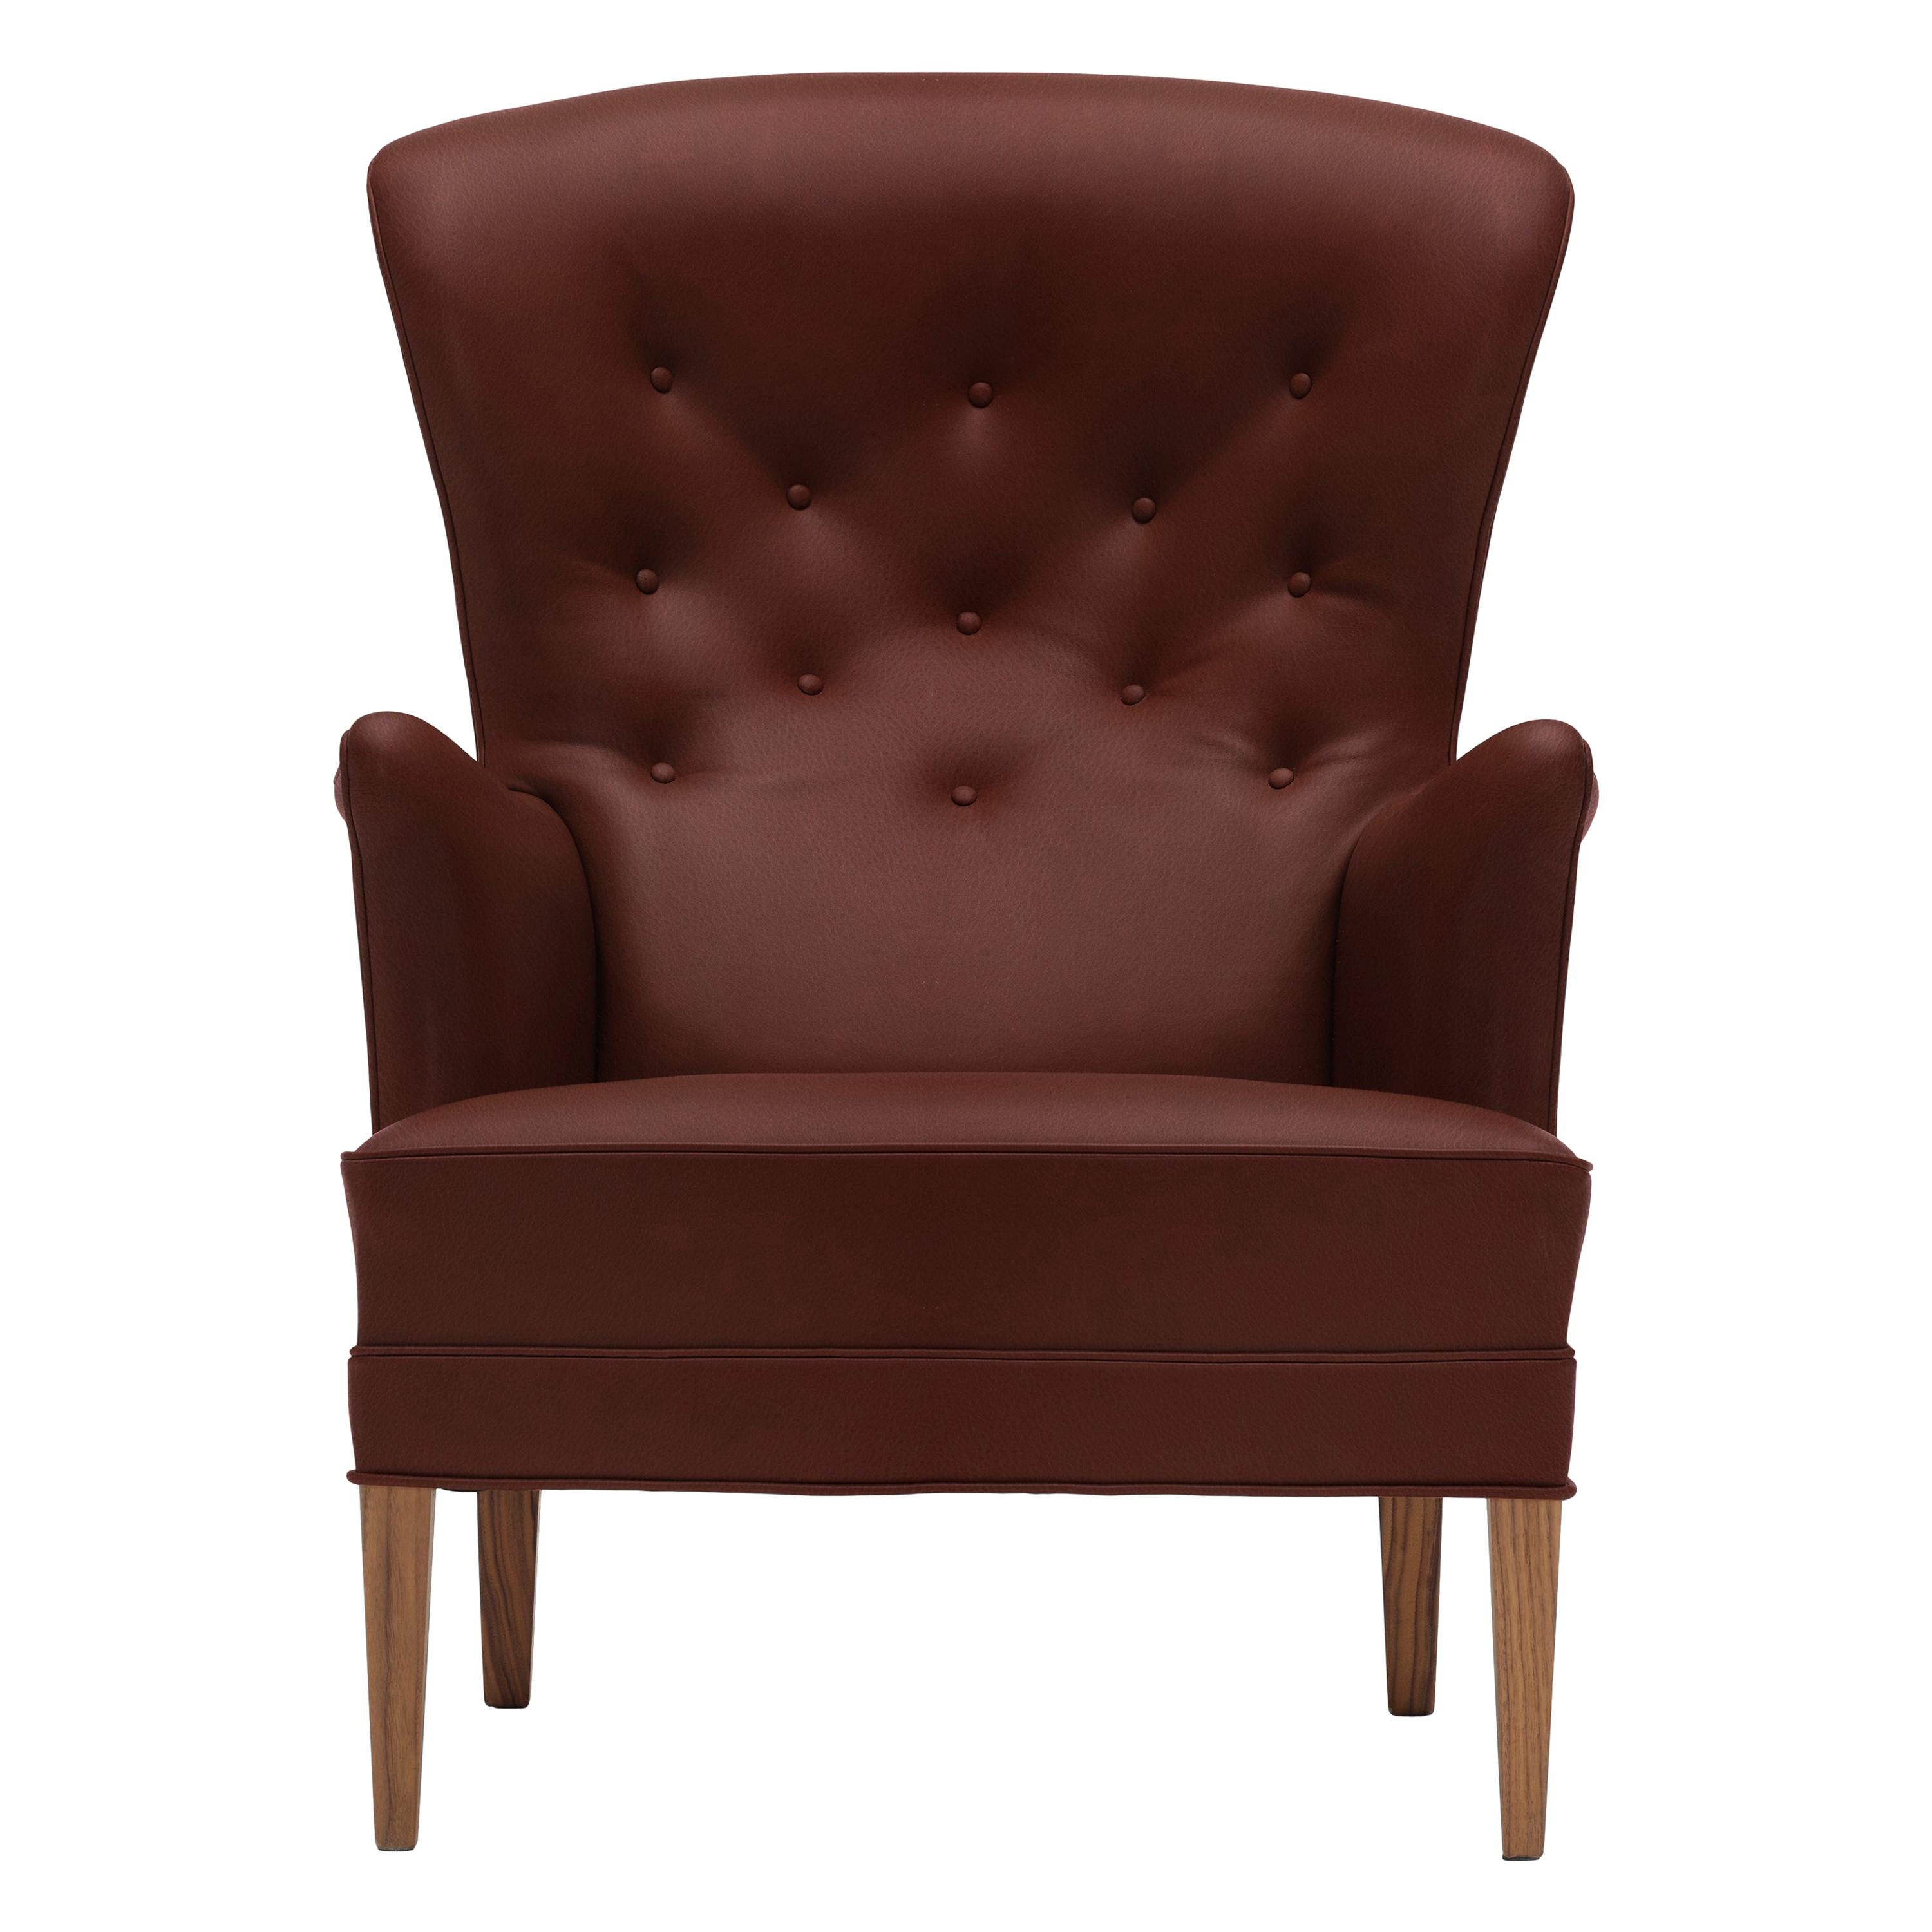 FH419 Heritage Chair in Walnut Oil by Frits Henningsen